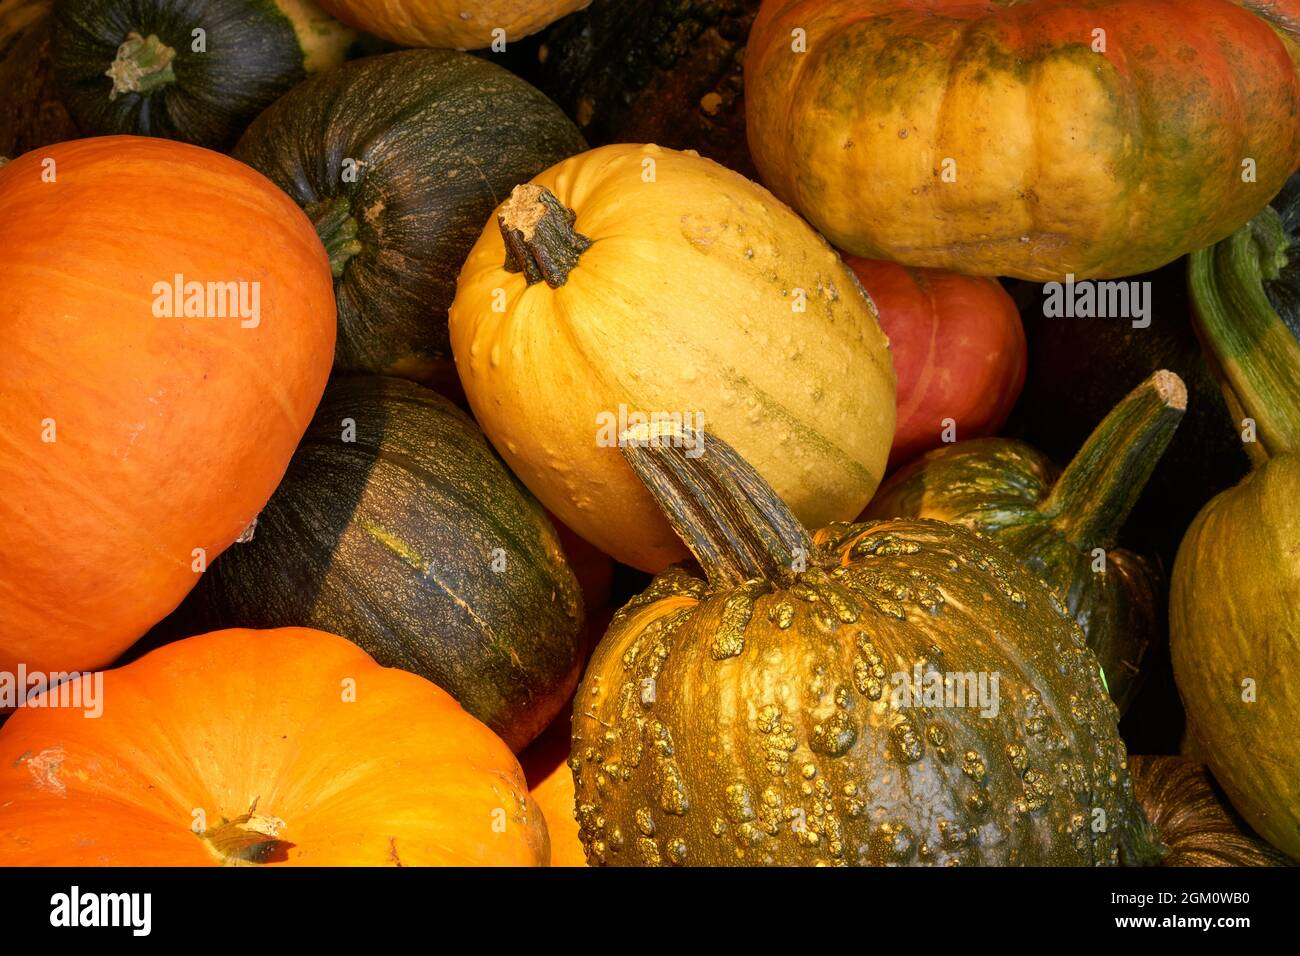 closeup-of-a-pile-of-pumpkins-of-various-types-sizes-and-colors-2GM0WB0.jpg